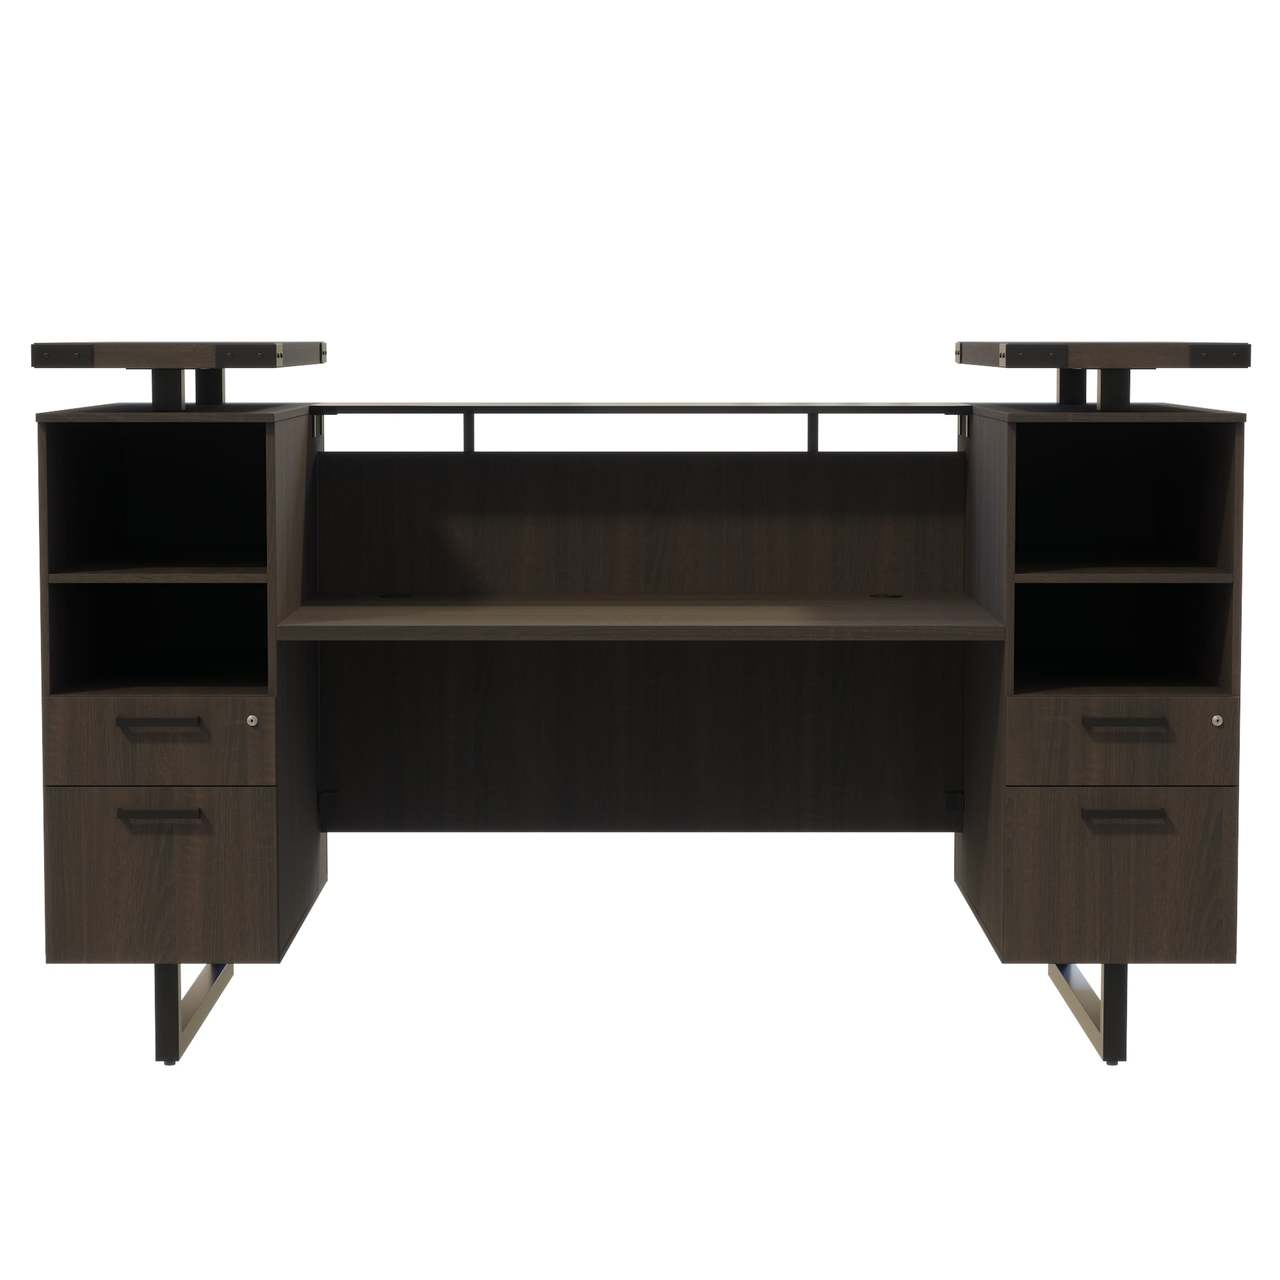 mirella southern tobacco reception desk inside view